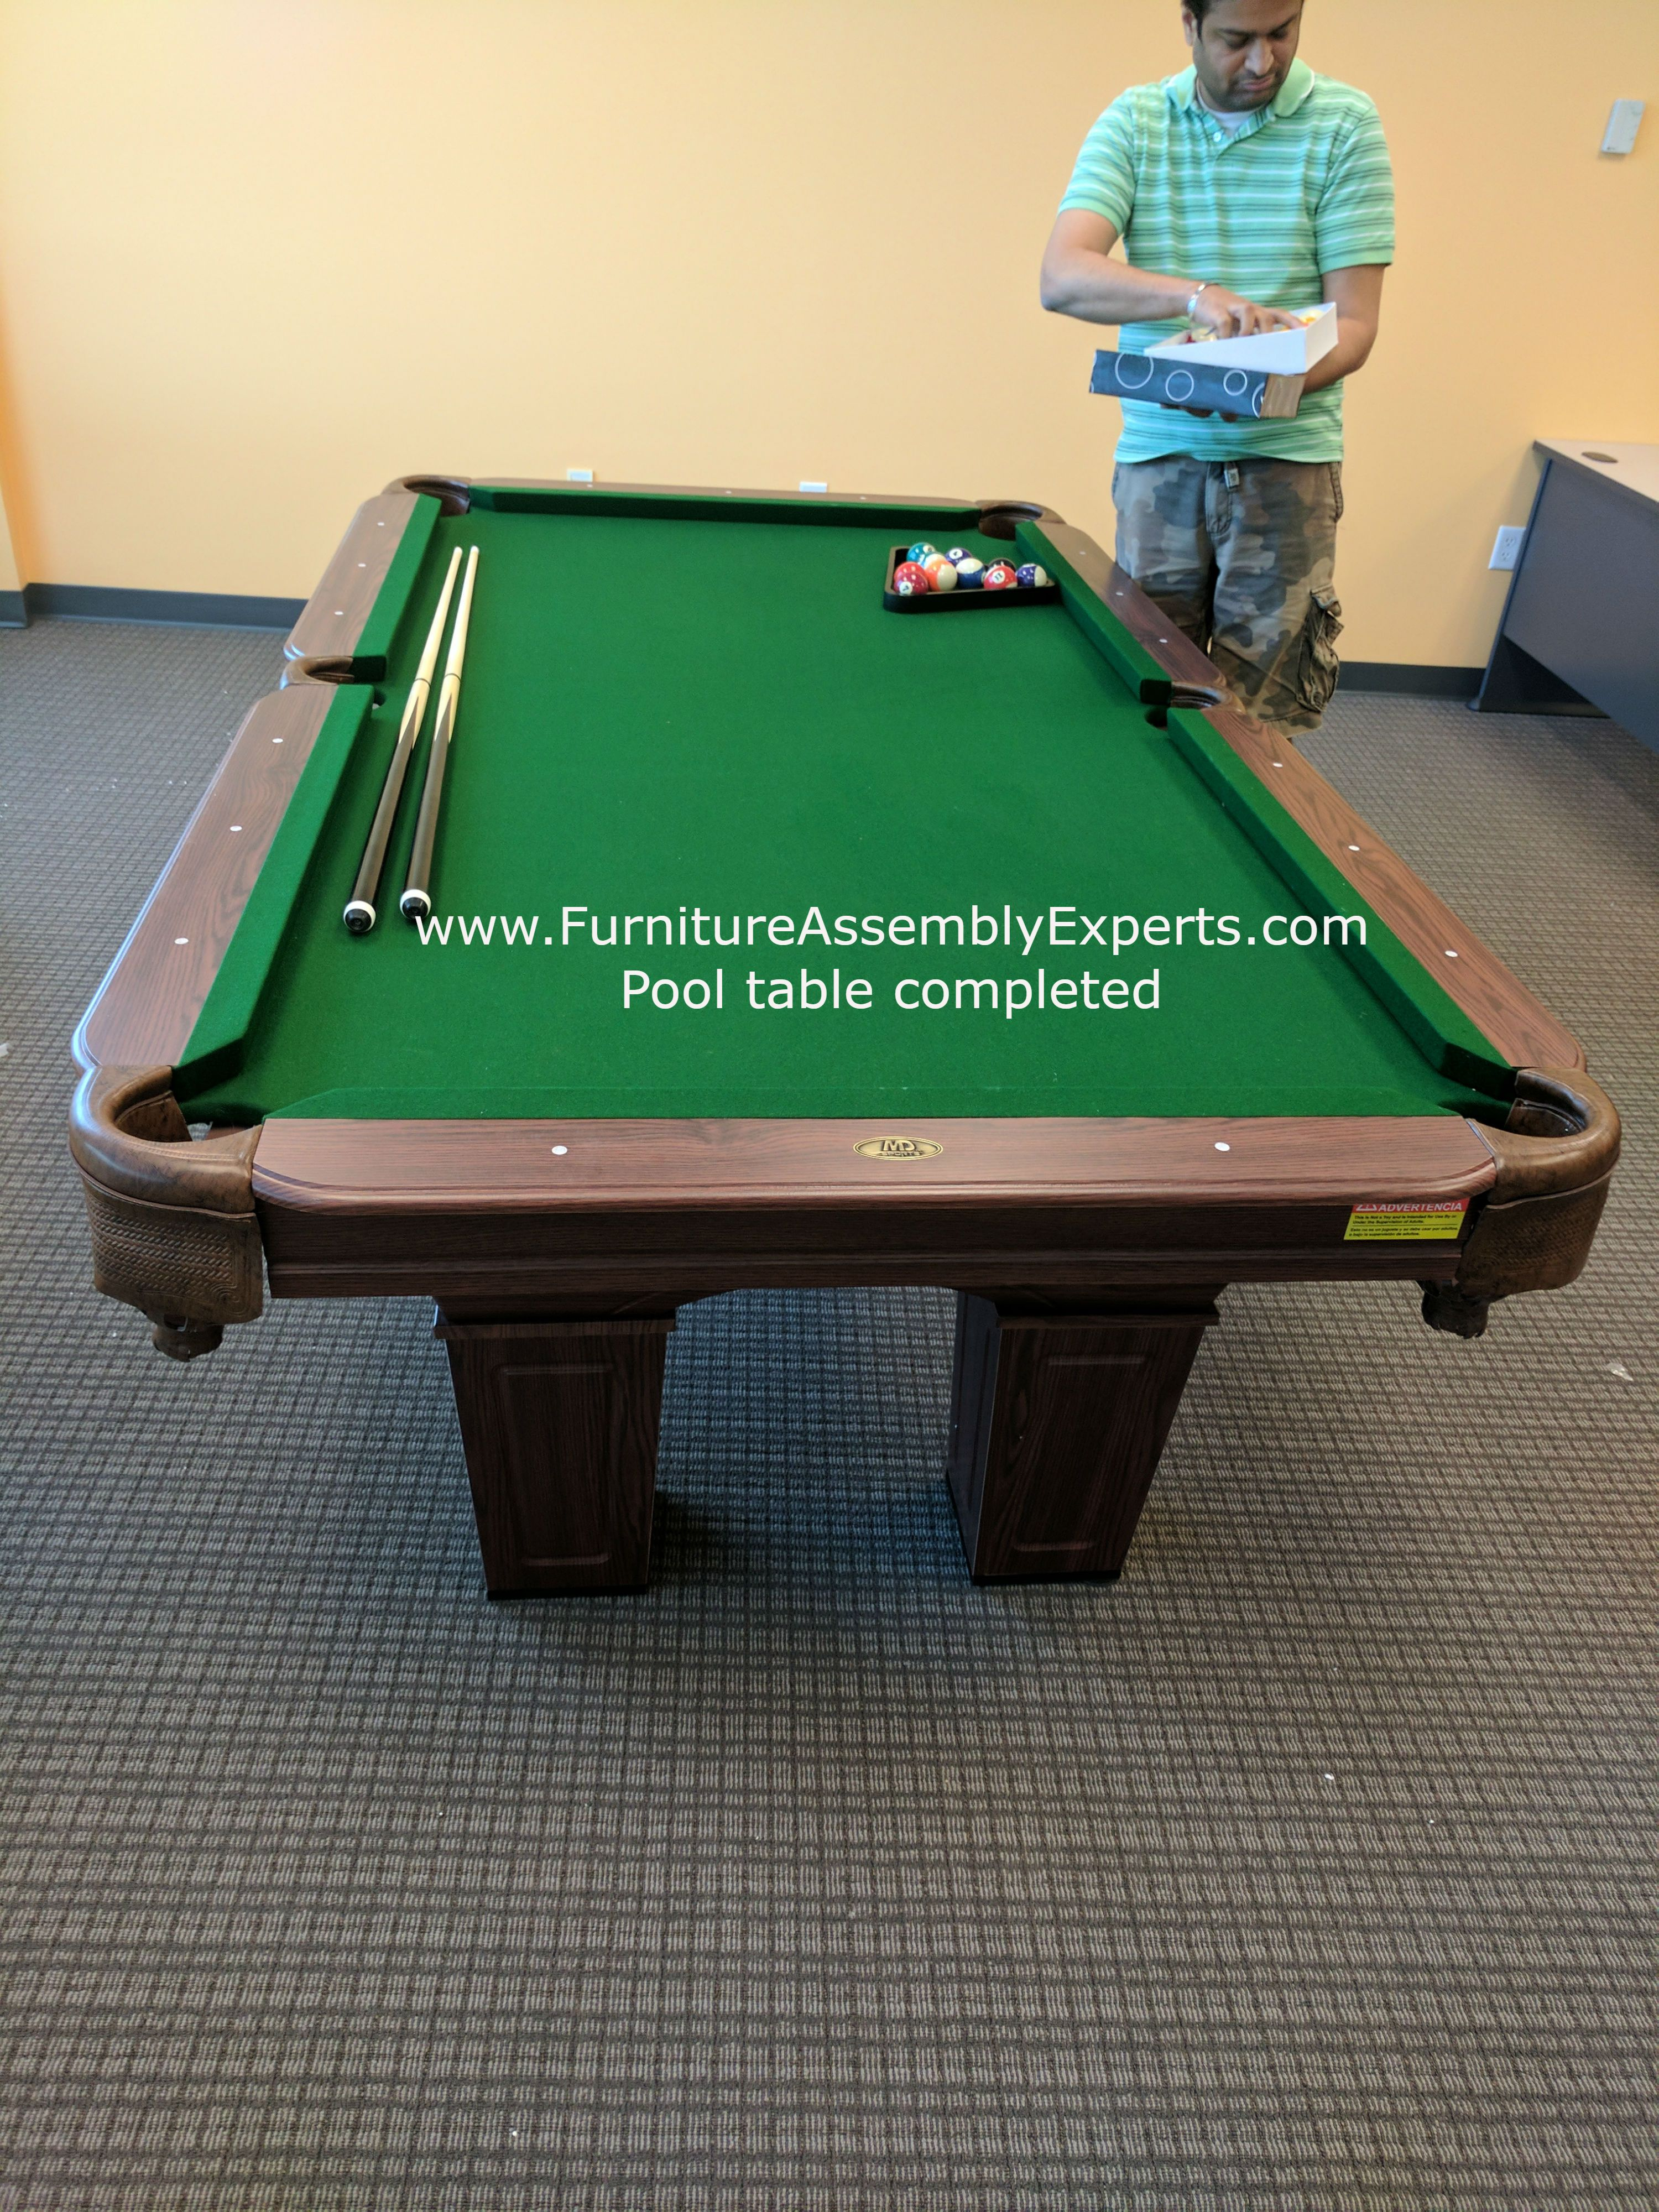 Billiard pool table assembly and installation specialist